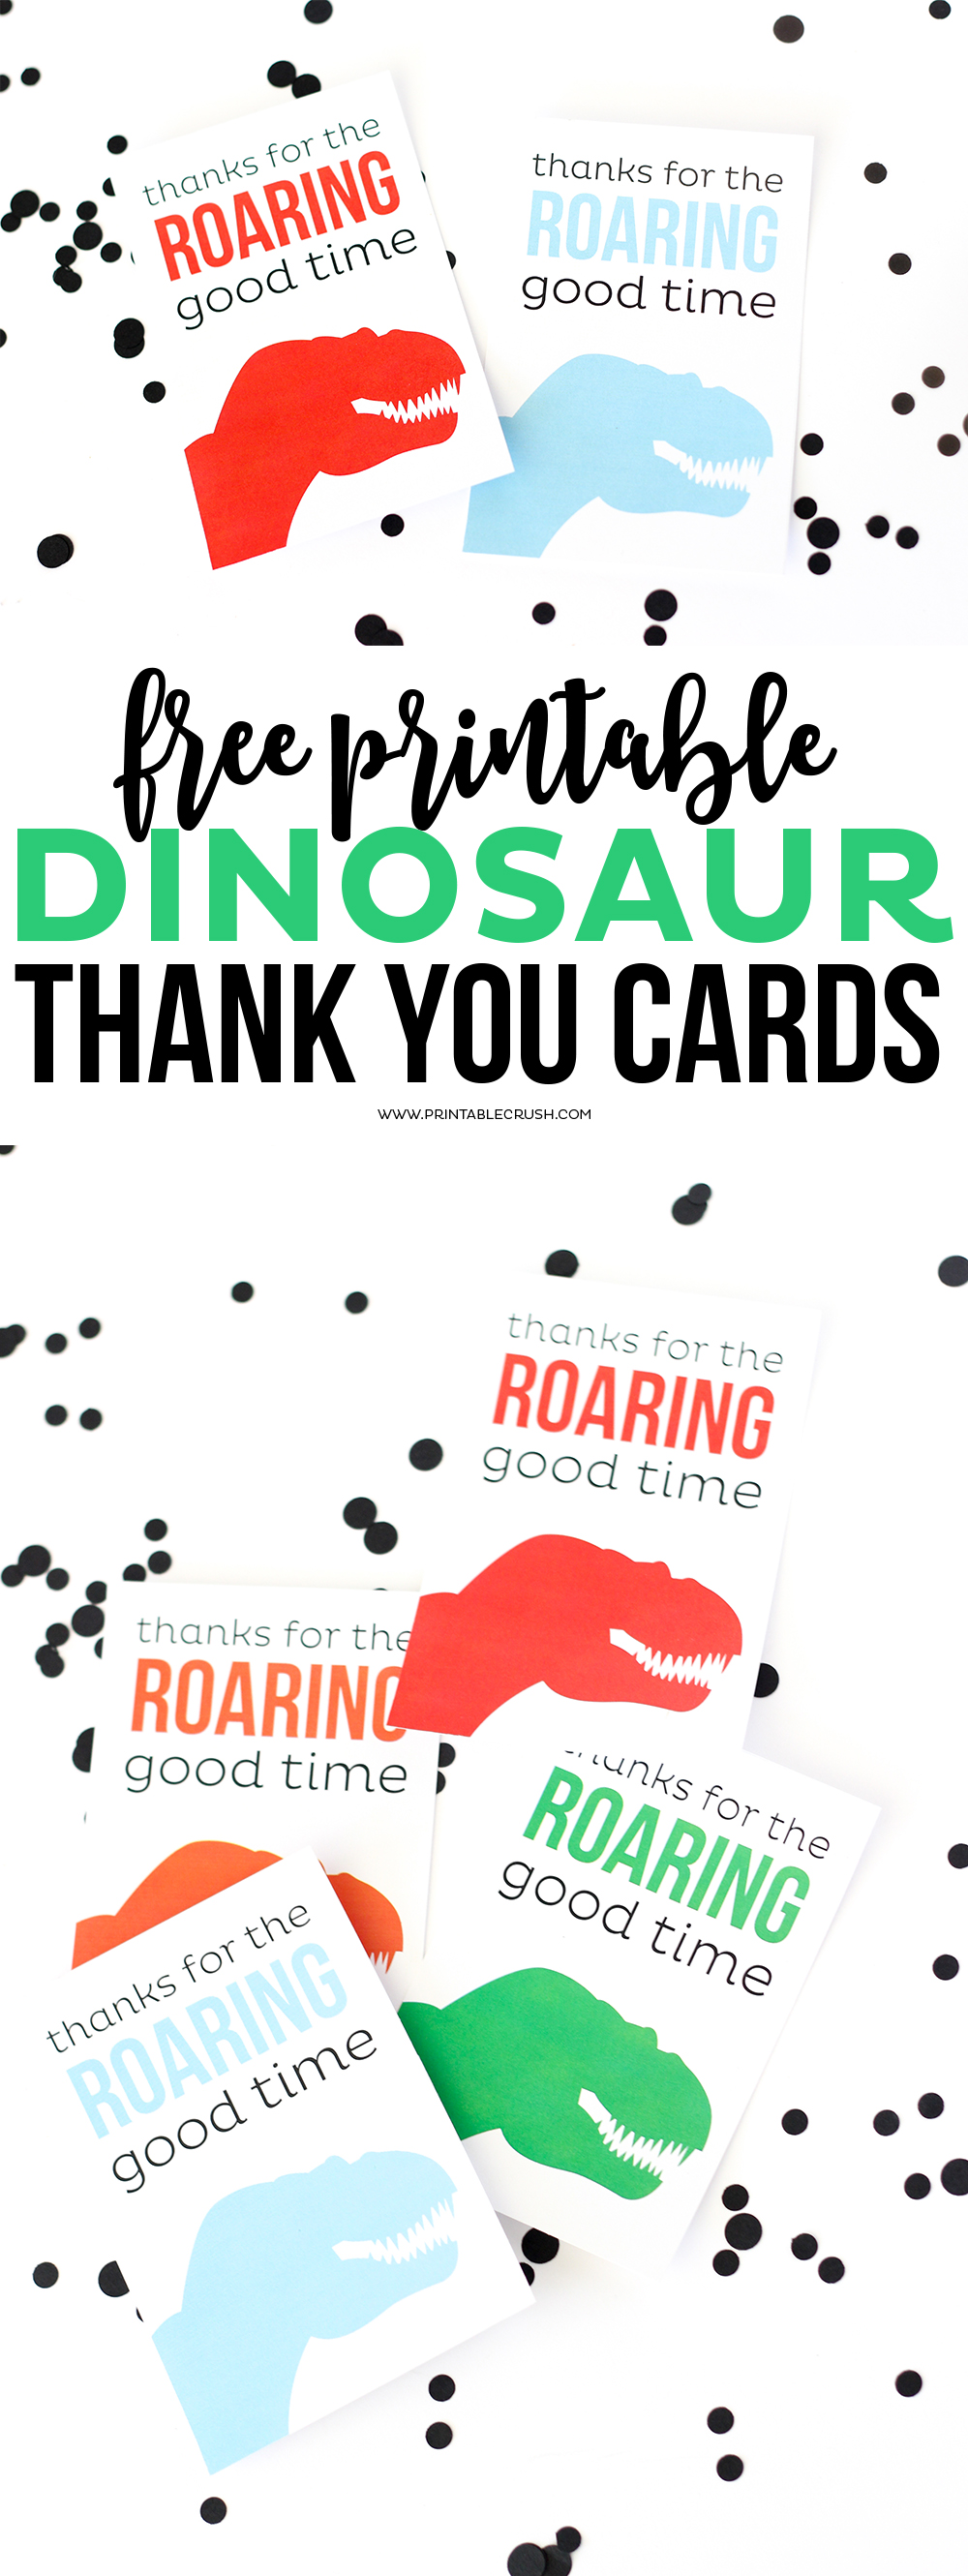 Dinosaur thank you cards free printables long pin collage